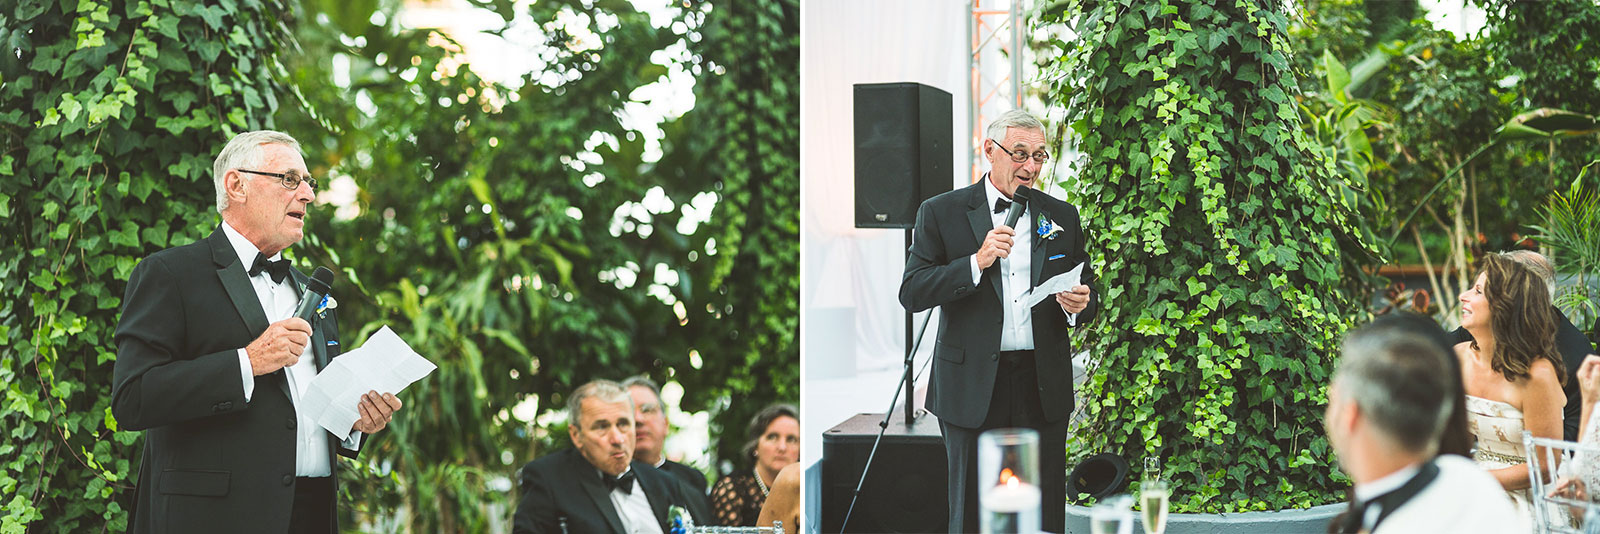 100-father-of-groom-speech